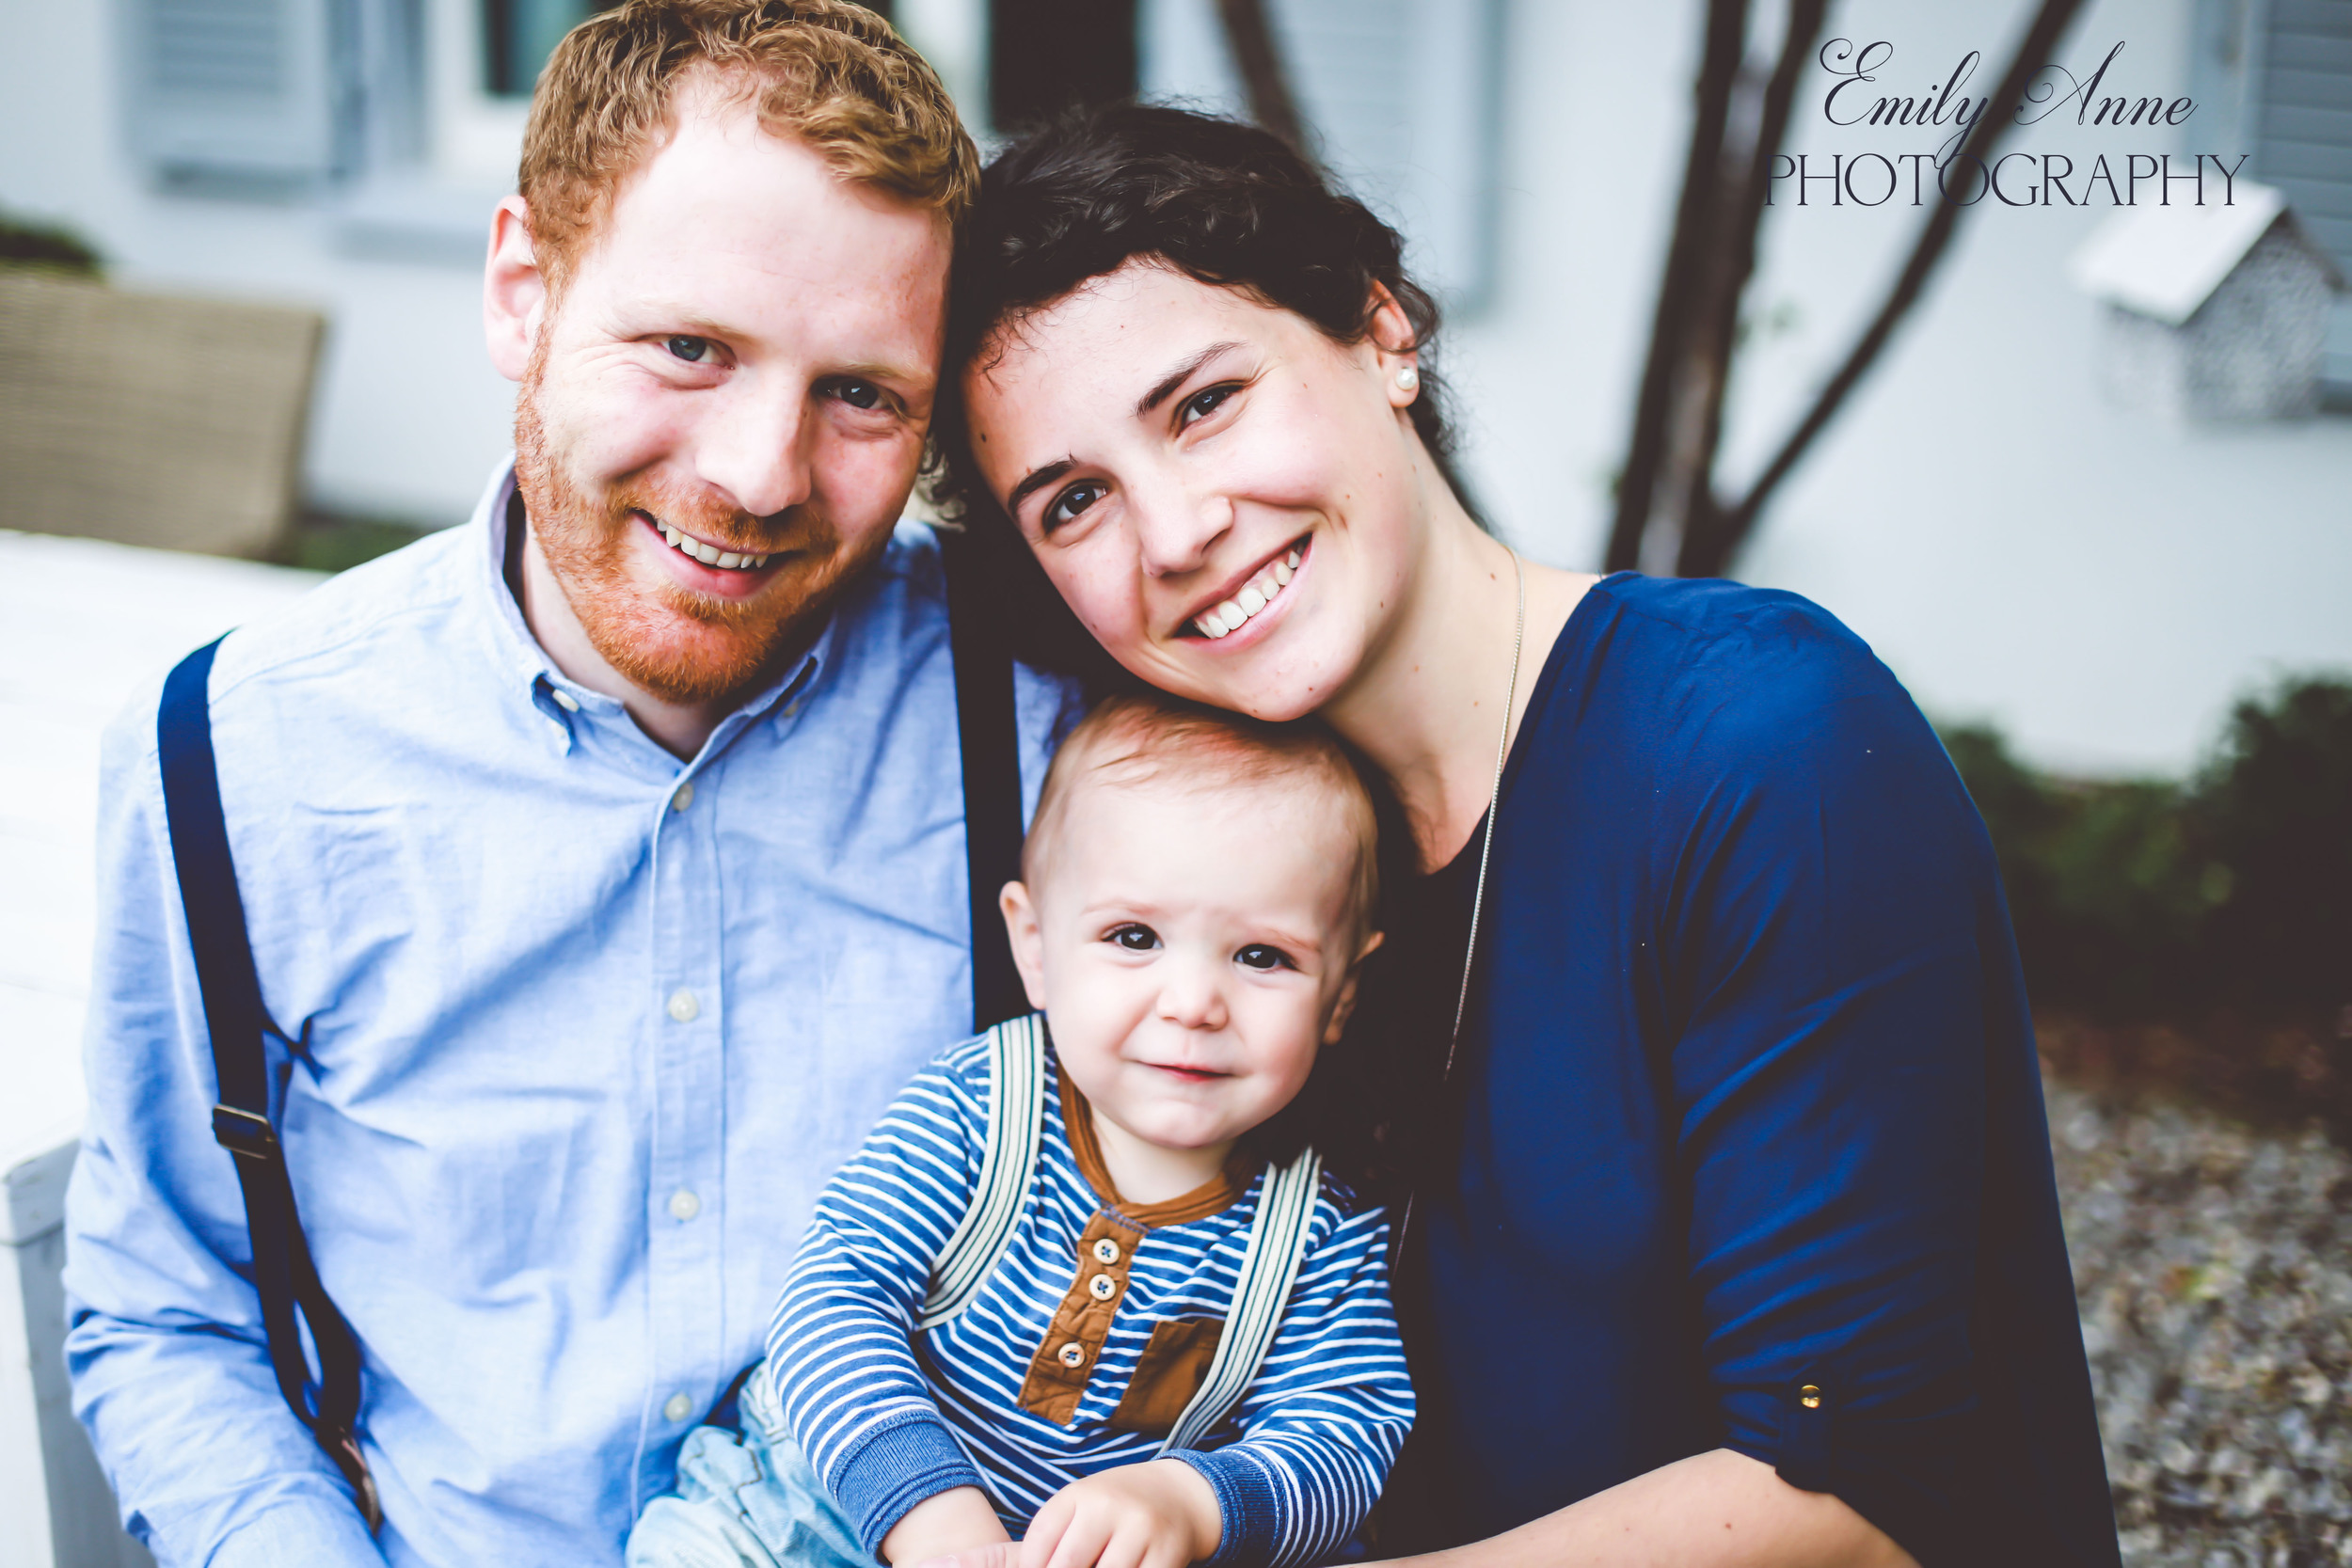 sweet southern family photos best pinterest photography posing tips for family emily anne international photographer shot in appenzell switzerland tiny hands and babies nashville tennessee father son photos top photography around nashville area and european countries and switzerland